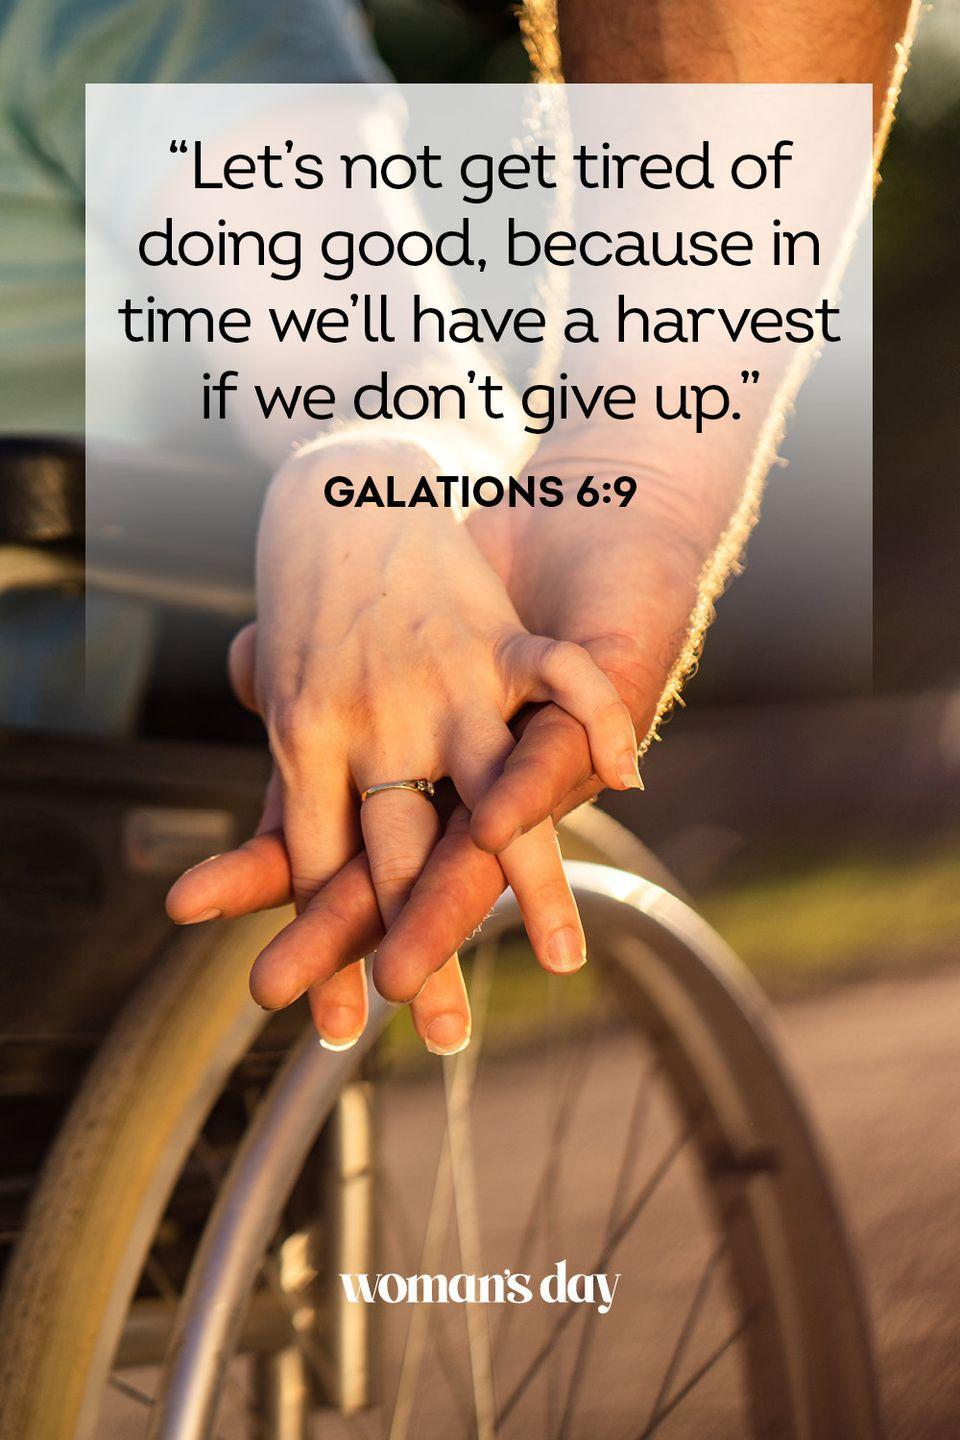 """<p>""""Let's not get tired of doing good, because in time we'll have a harvest if we don't give up."""" — Galations 6:9</p><p><strong>The Good News: </strong>Good things come to those who do good. And, yes, we shouldn't be doing the right thing just for a potential reward. But the feeling we get when we do bestow kindness on others is one of the best gifts around.</p>"""